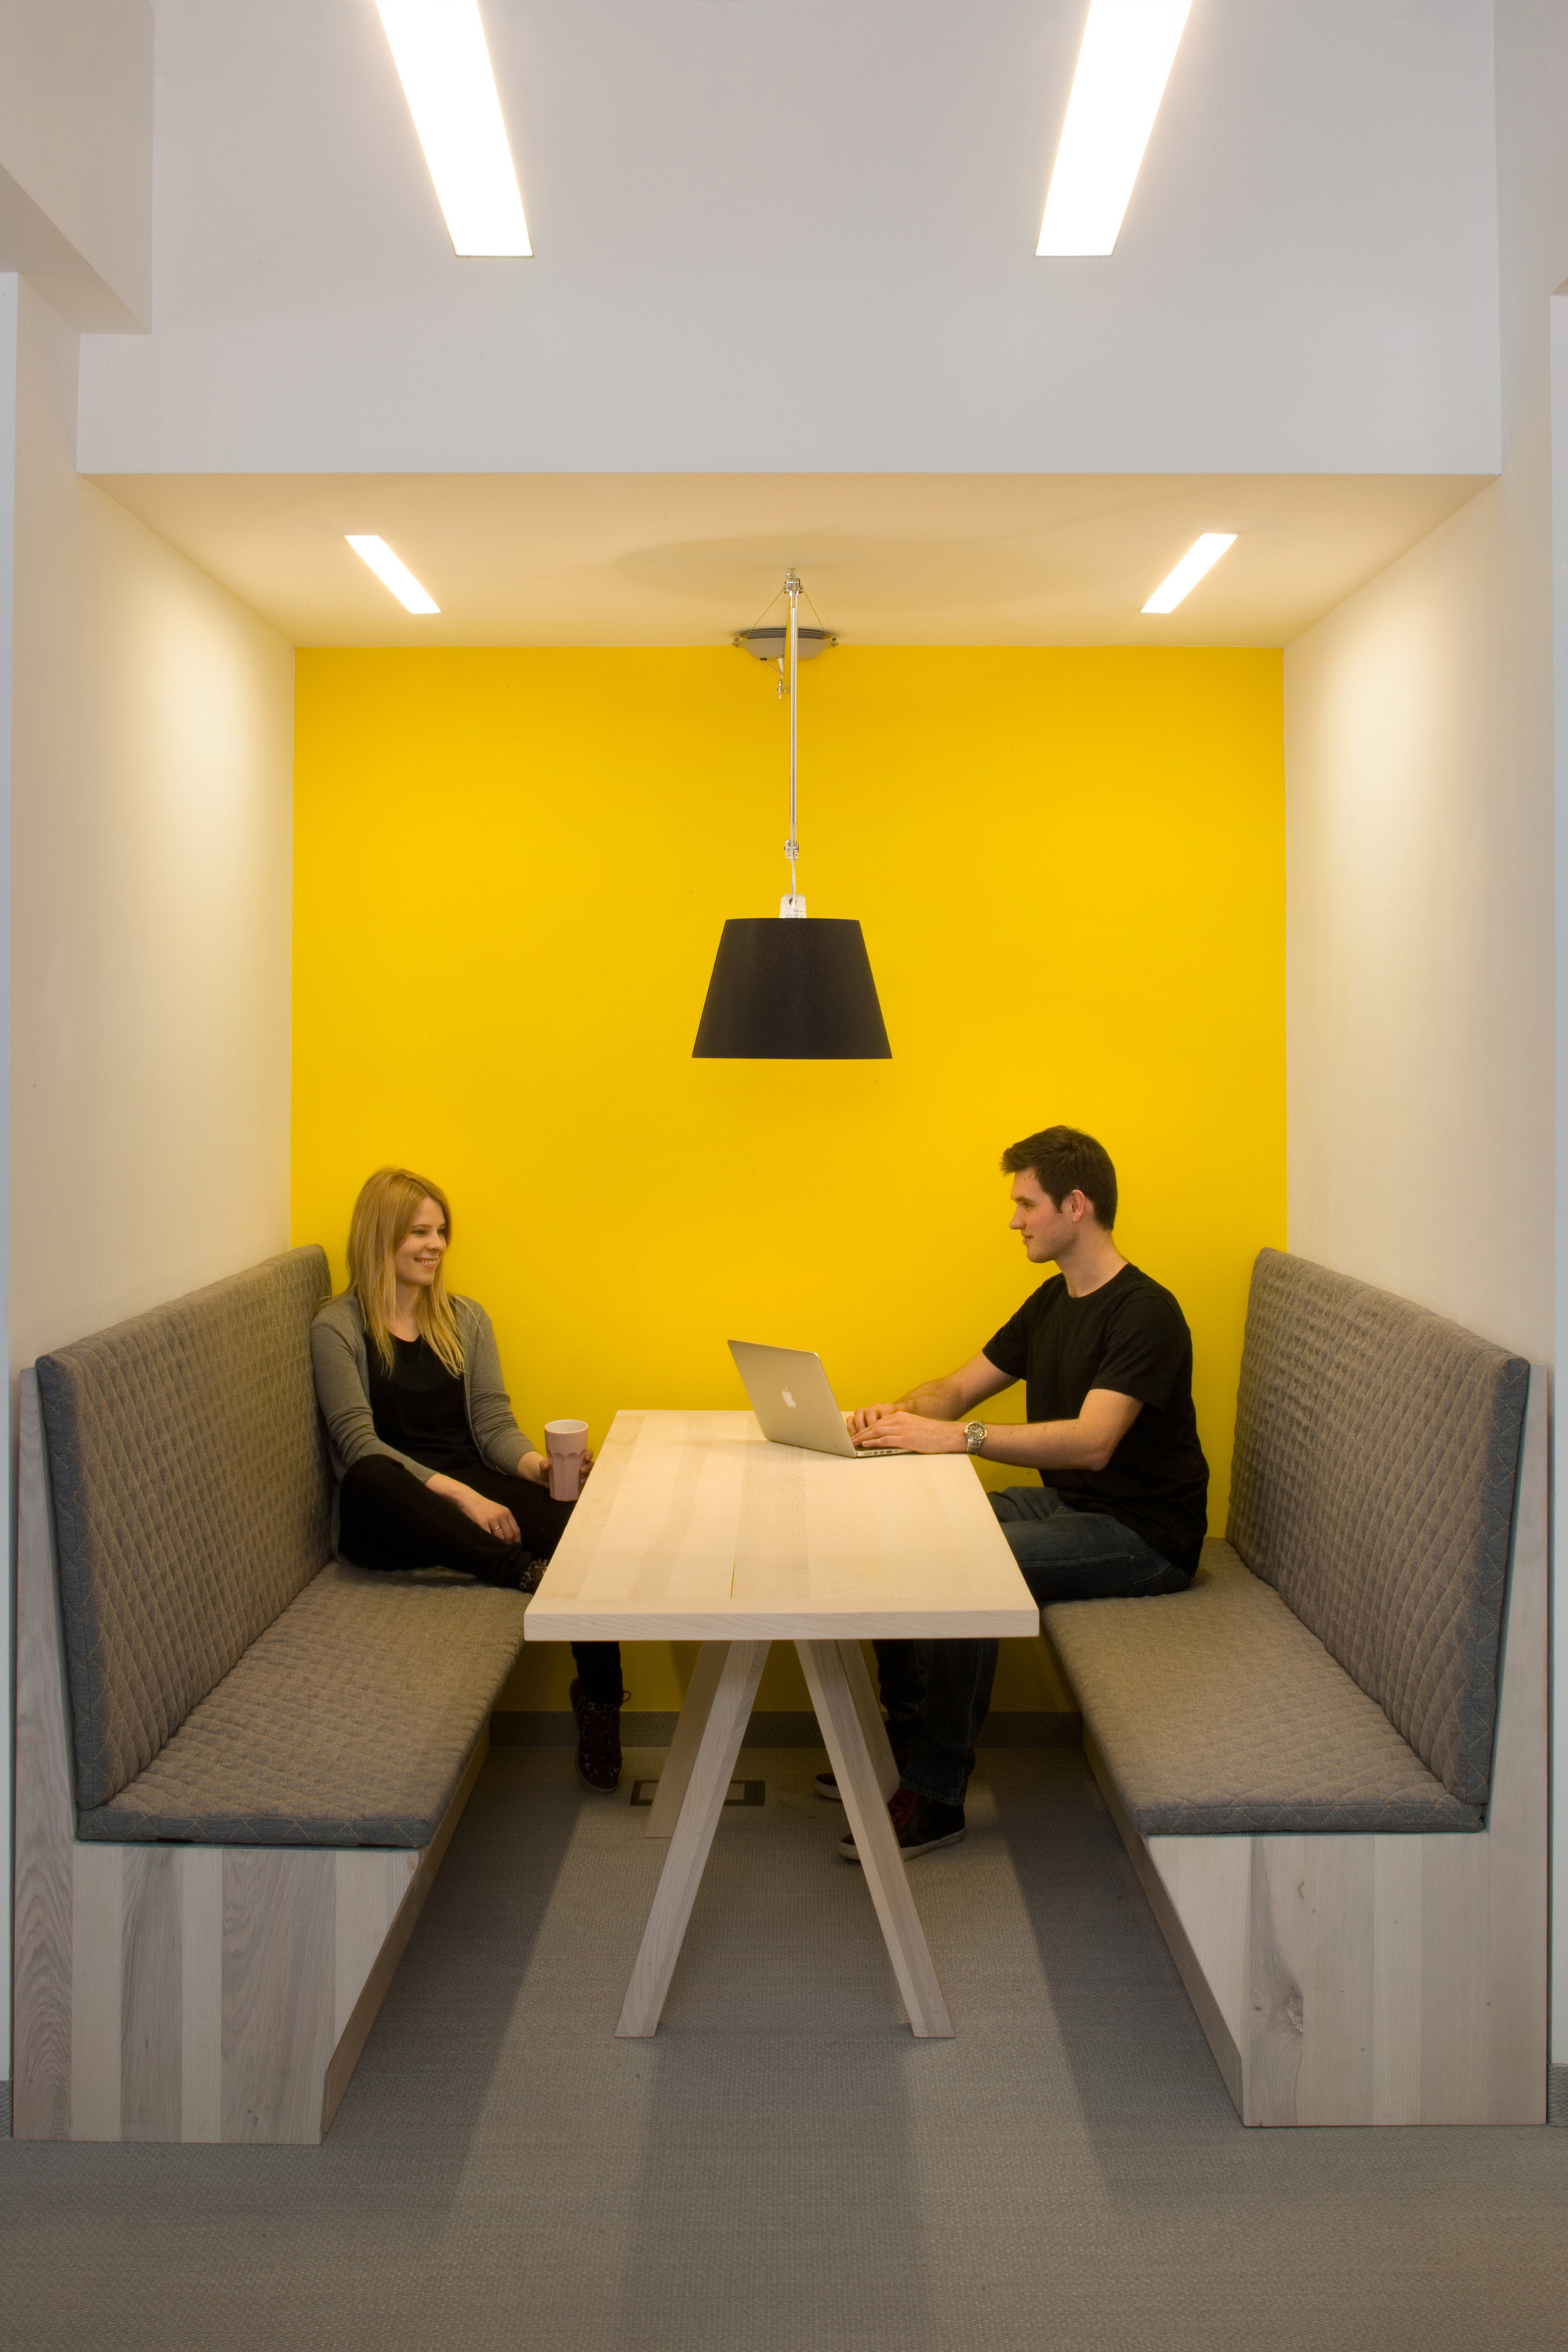 Gallery of it hq morpho studio 2 for Office design yellow